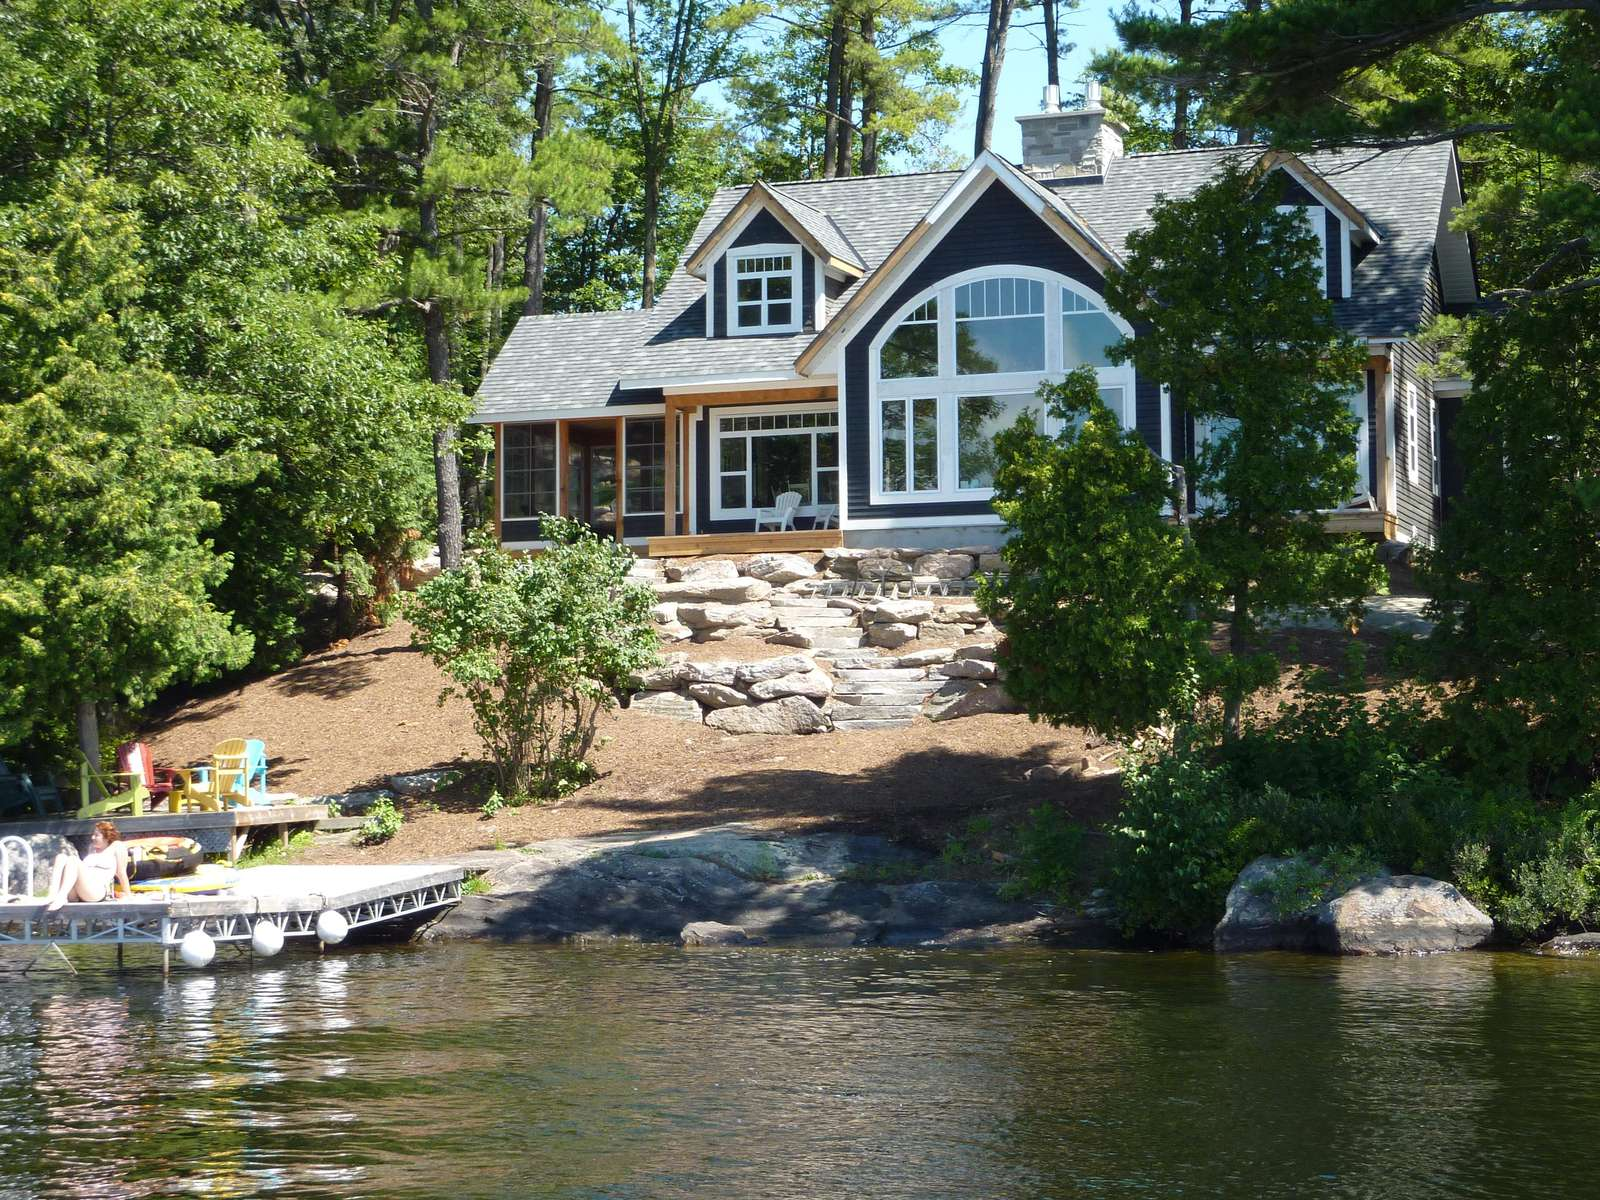 Super Peace Of Muskoka Bay Jaynes Cottages Luxury Muskoka Rentals Download Free Architecture Designs Scobabritishbridgeorg